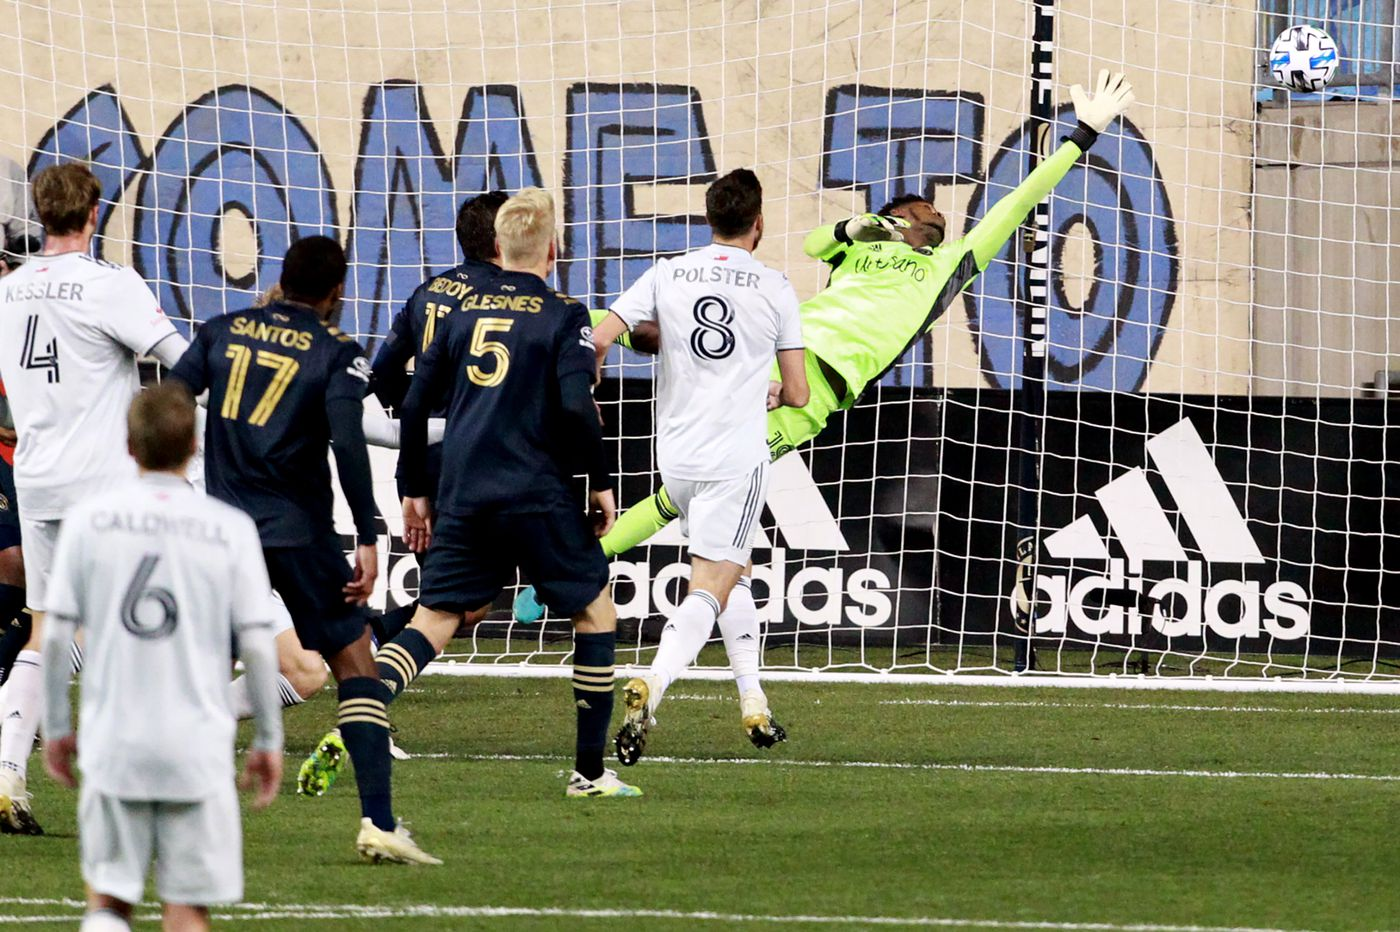 Union's season ends with 2-0 playoff loss to New England Revolution